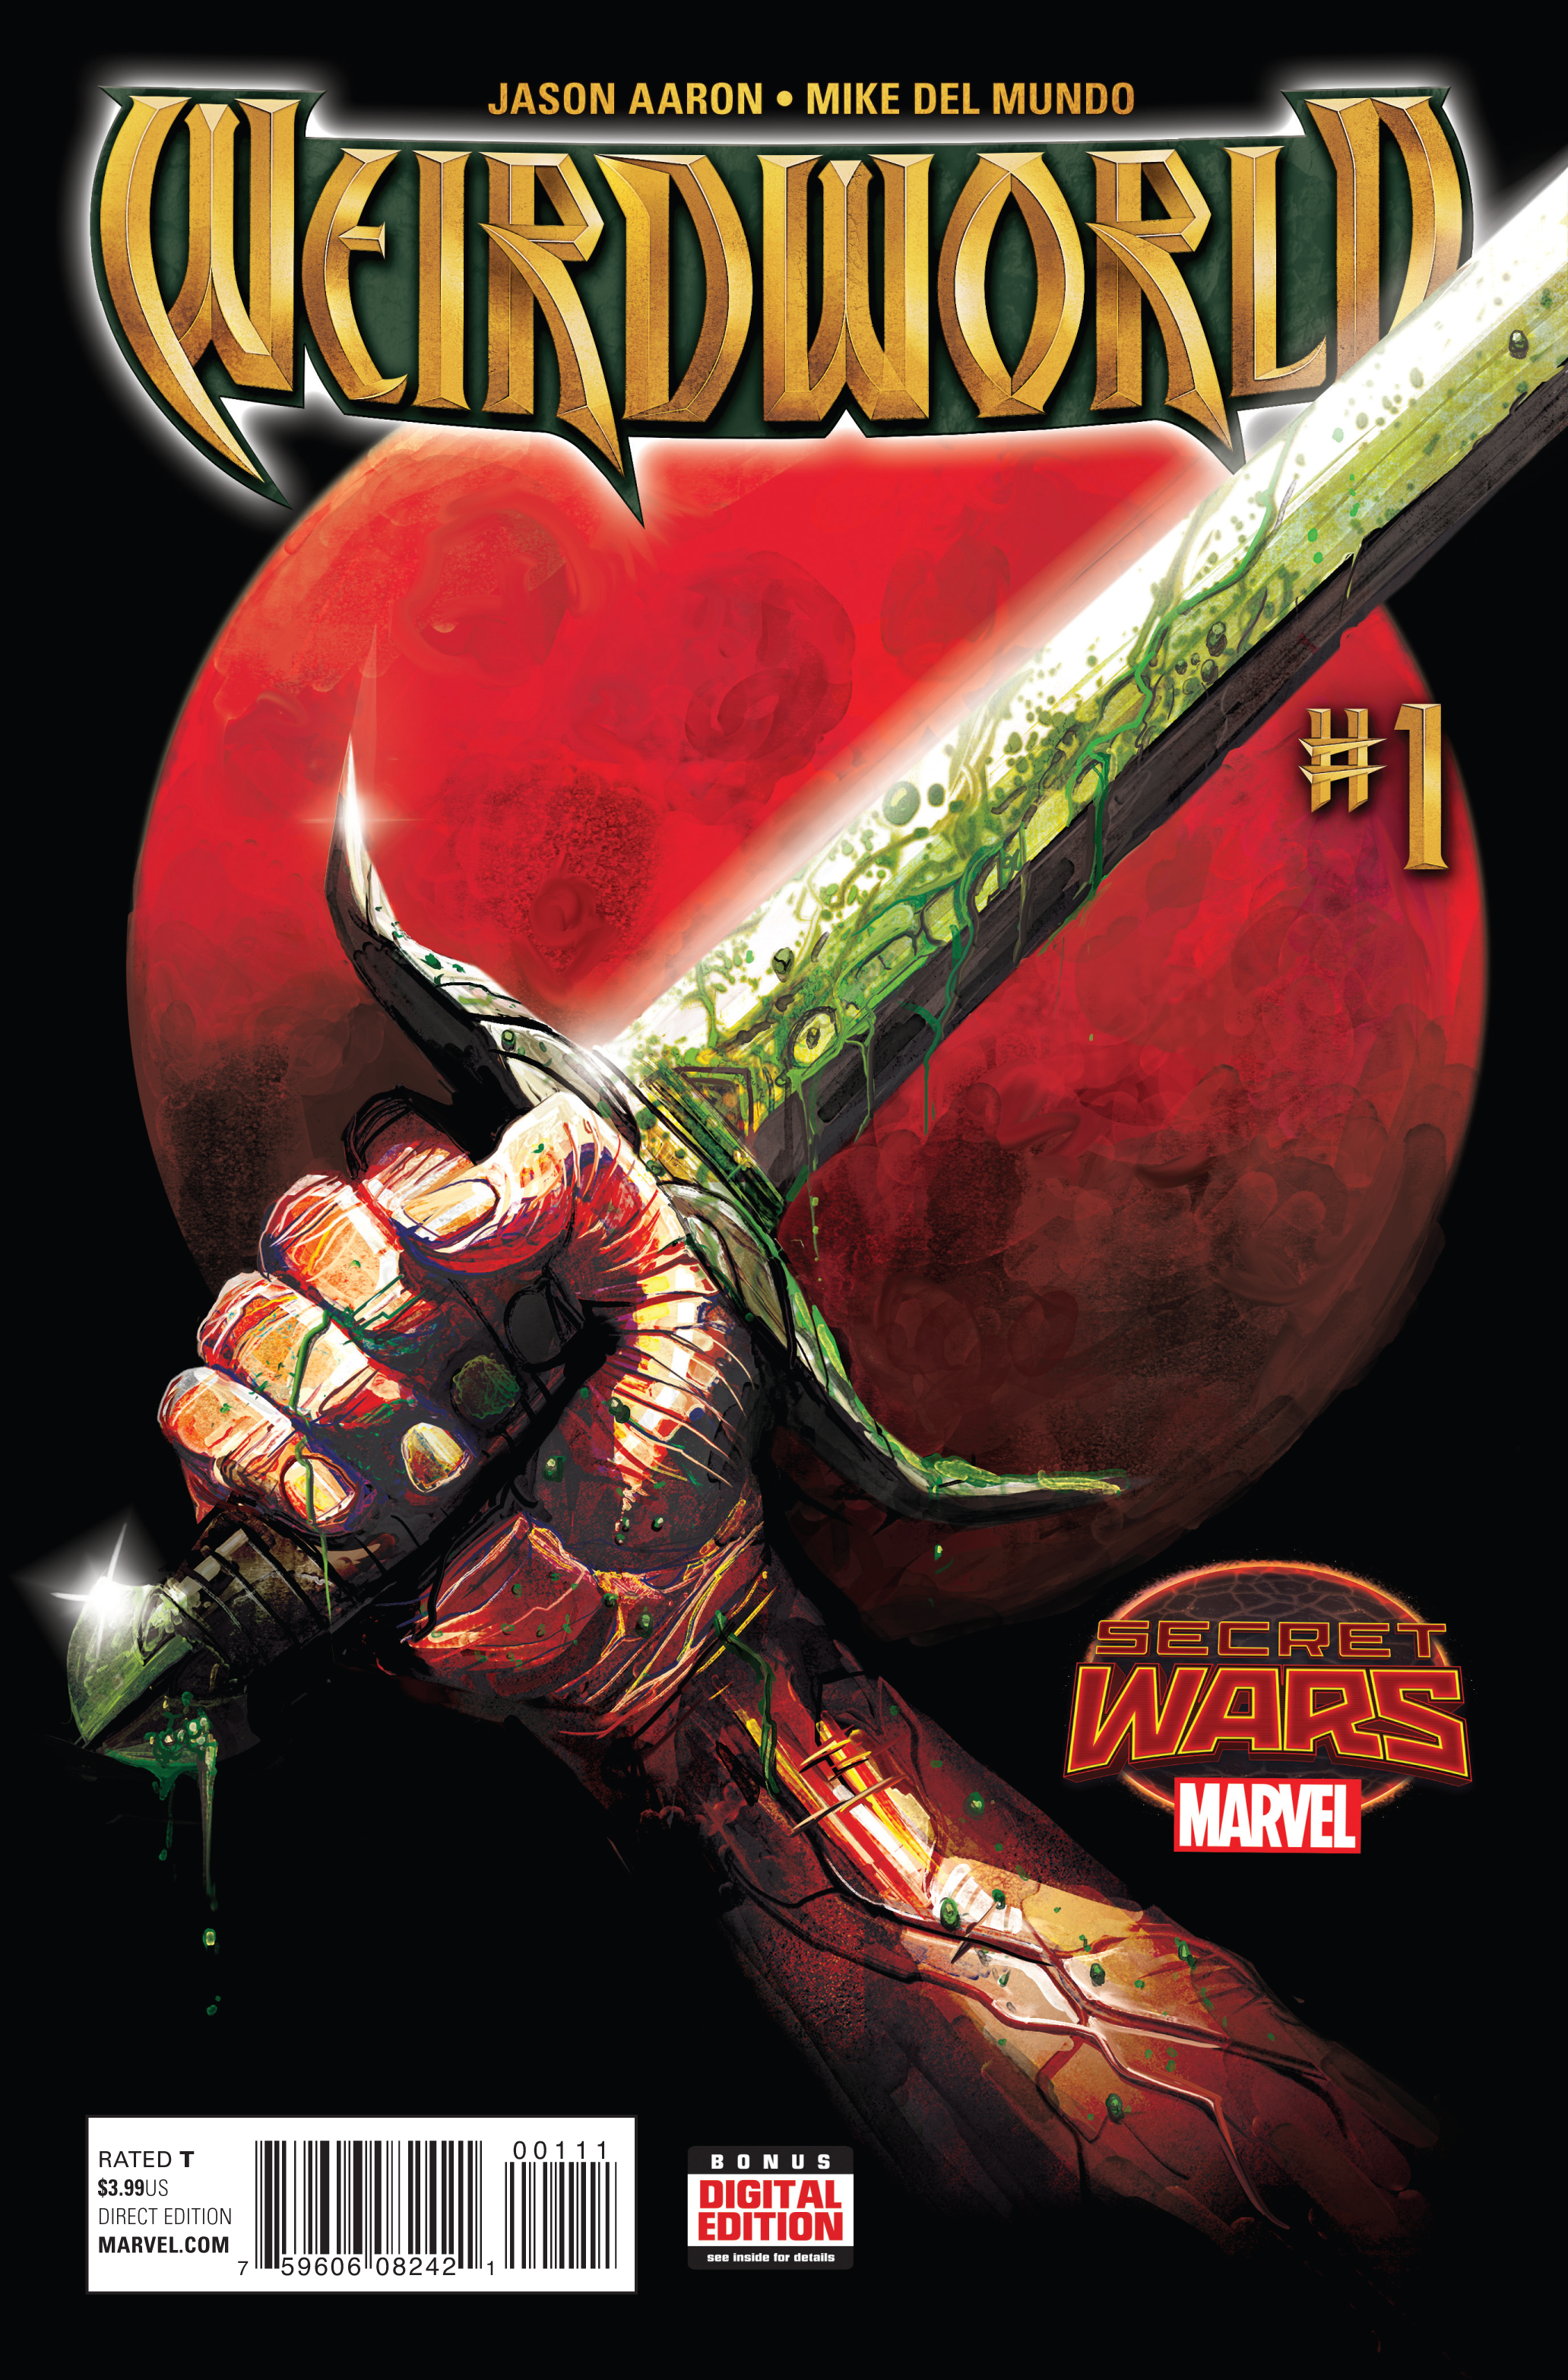 WEIRDWORLD #1 SWA